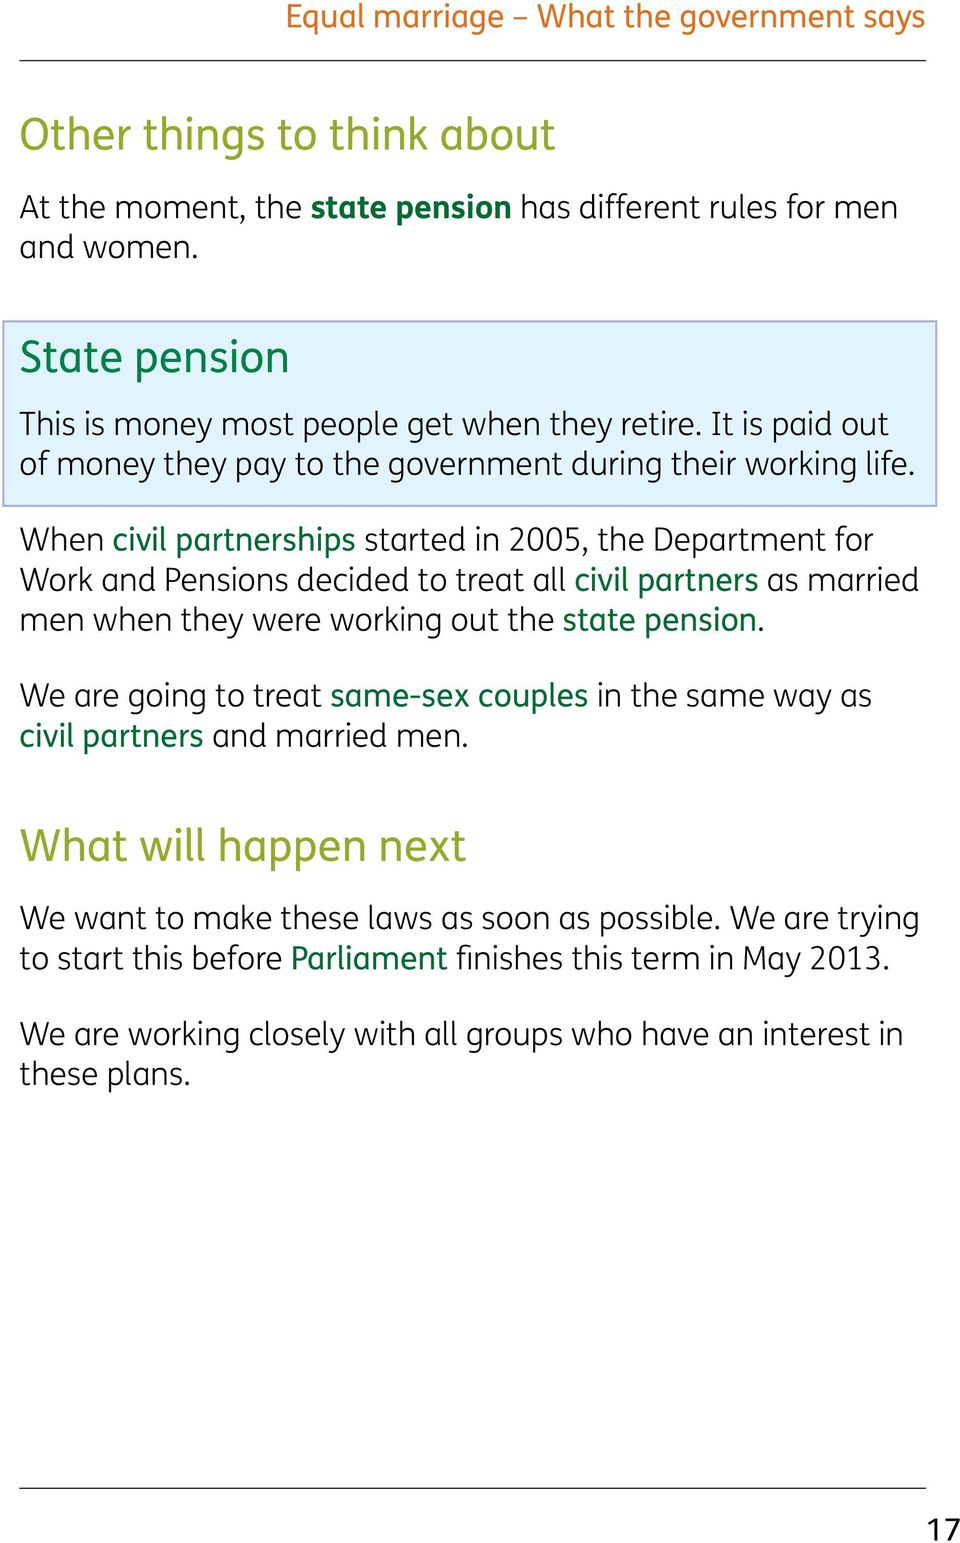 When civil partnerships started in 2005, the Department for Work and Pensions decided to treat all civil partners as married men when they were working out the state pension.